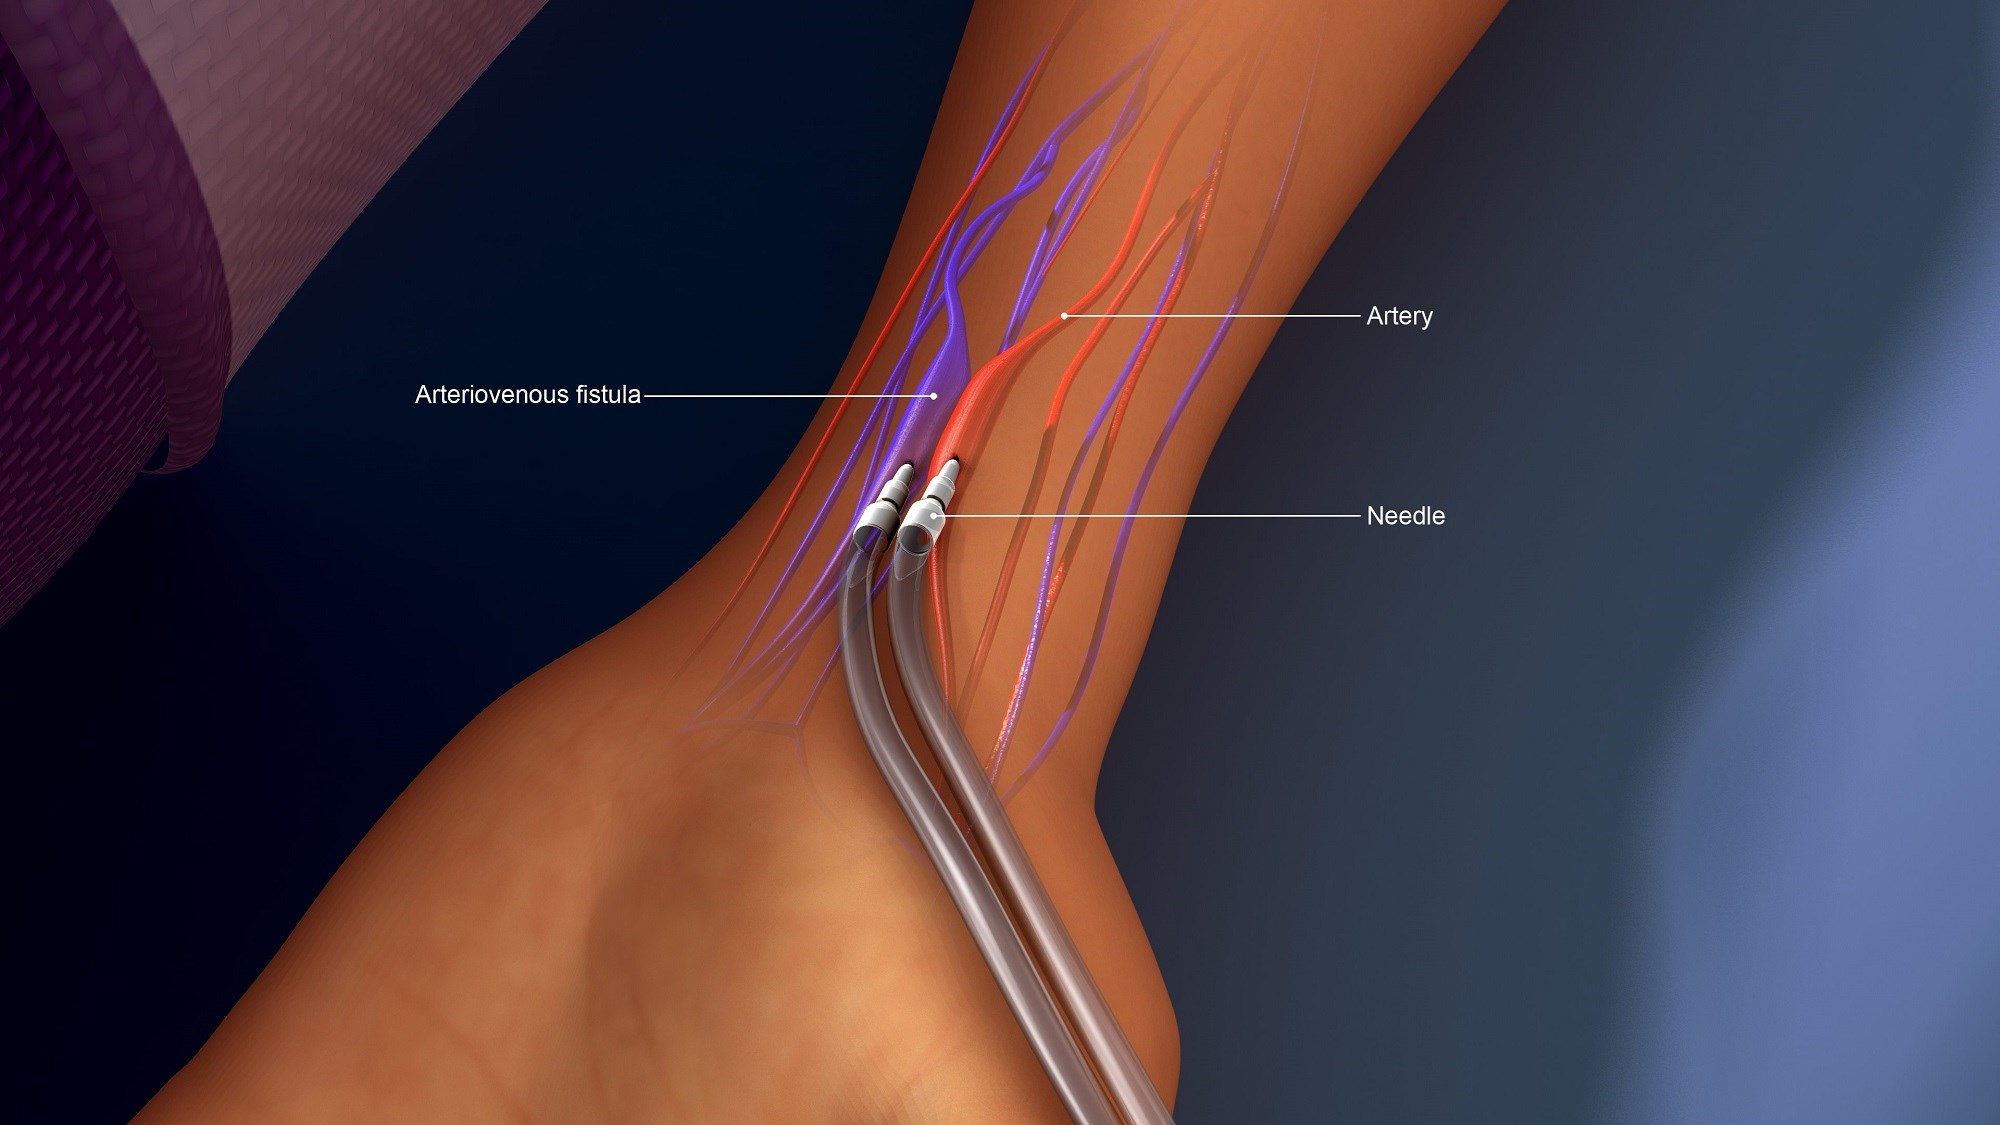 FDA Permits Marketing of Devices to Create Arteriovenous Fistula